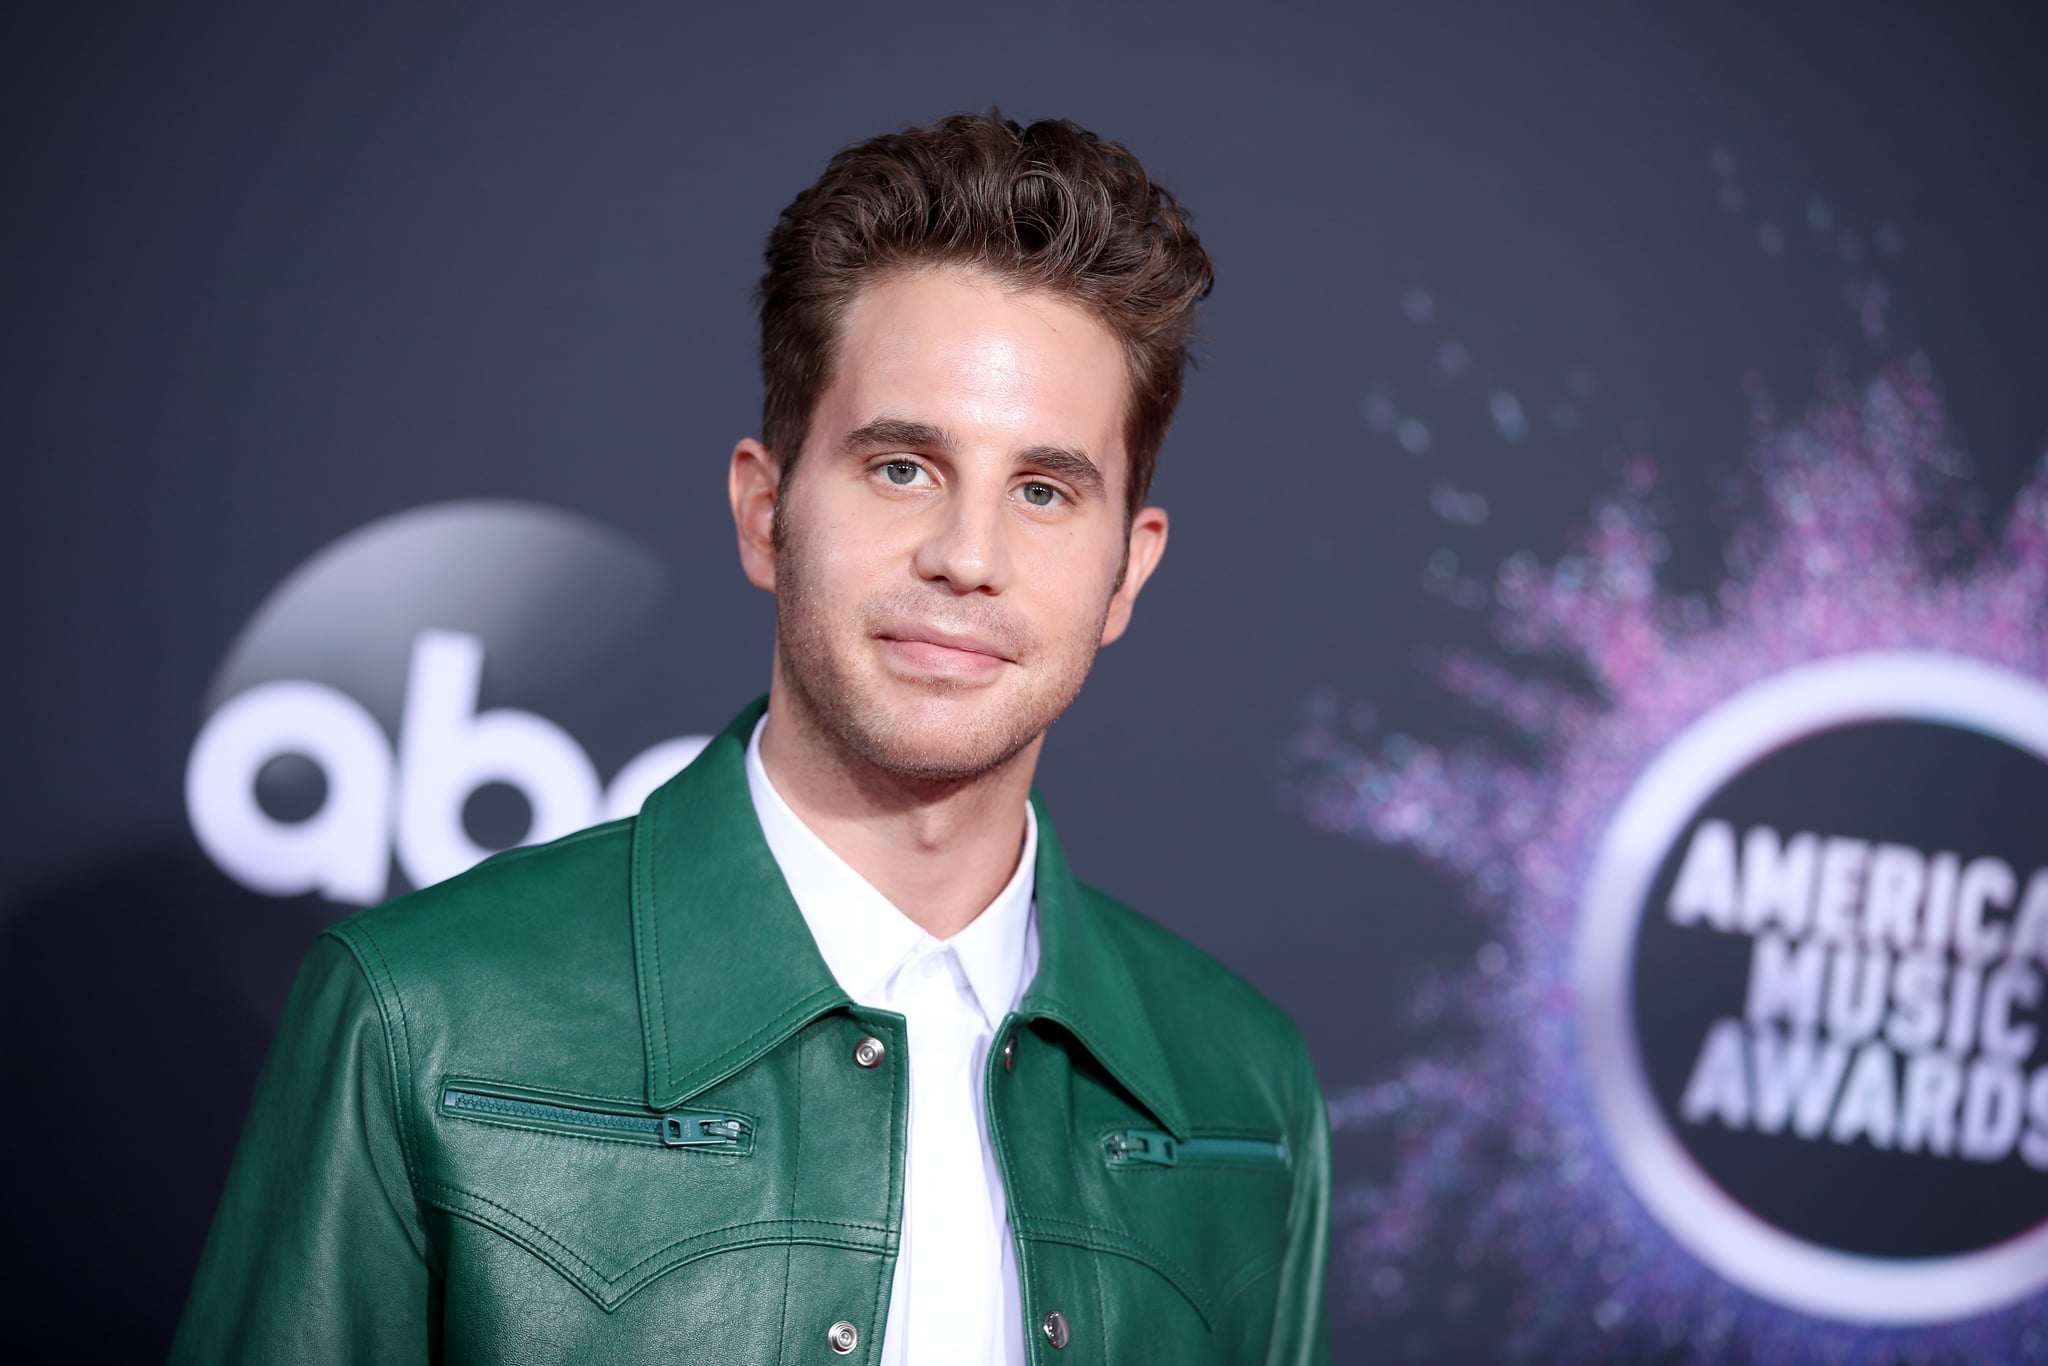 LOS ANGELES, CALIFORNIA - NOVEMBER 24: Ben Platt attends the 2019 American Music Awards at Microsoft Theatre on November 24, 2019 in Los Angeles, California. (Photo by Rich Fury/Getty Images)